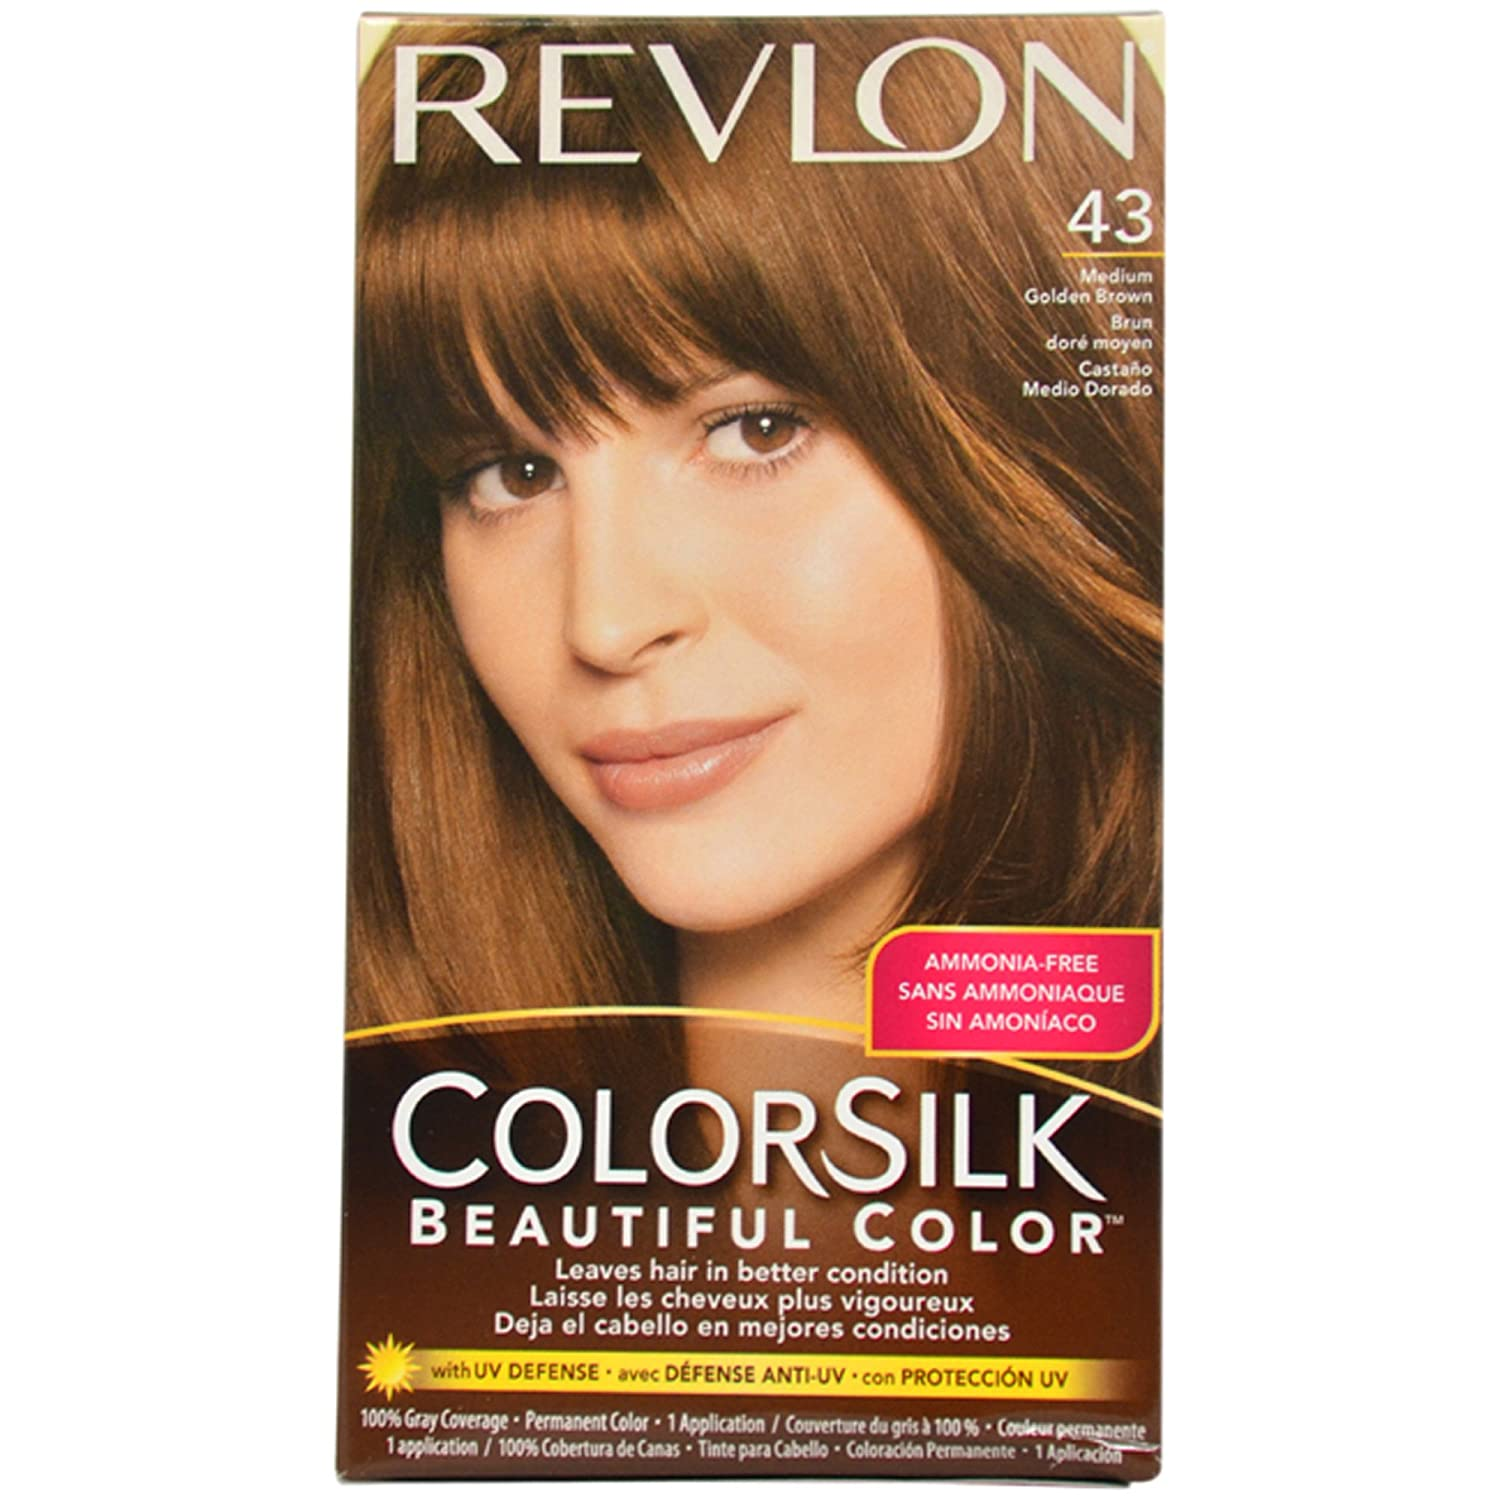 Revlon Colorsilk Beautiful Color, Medium Golden Brown 43